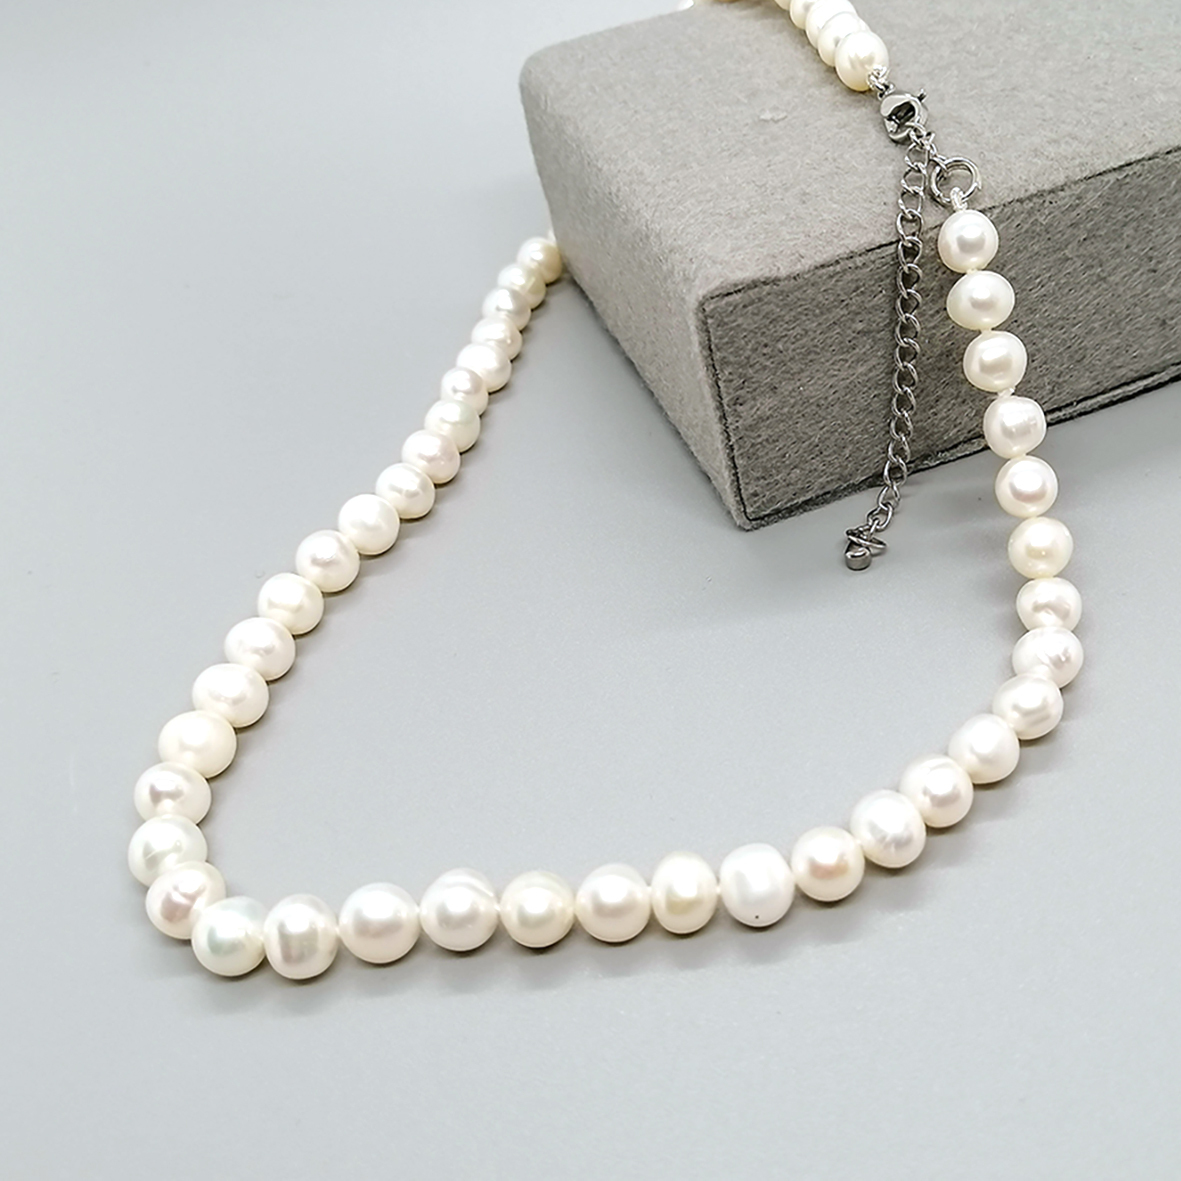 Pearl Necklace 6.5 - 02.jpg